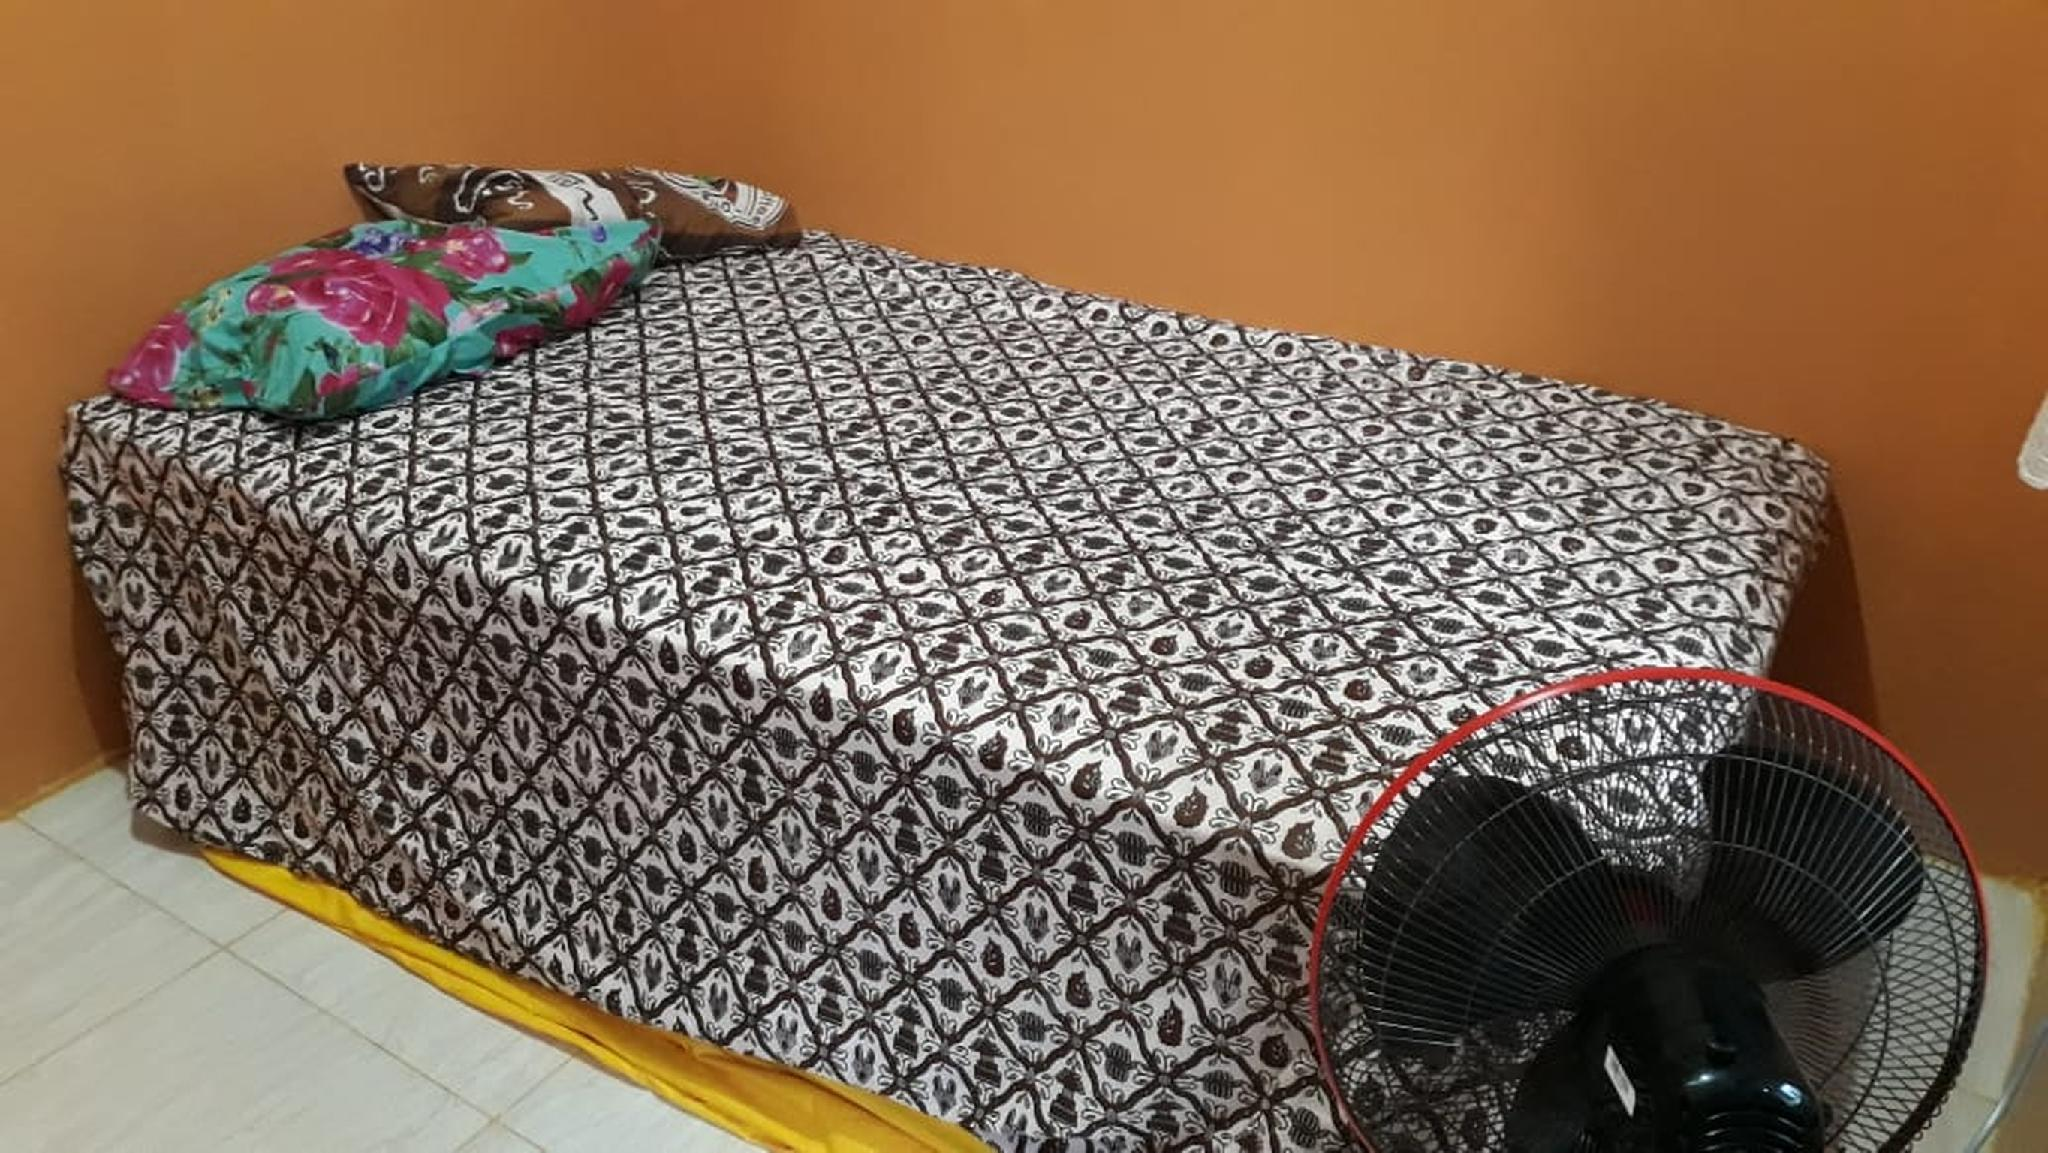 Affordable Room 10min away from Malioboro